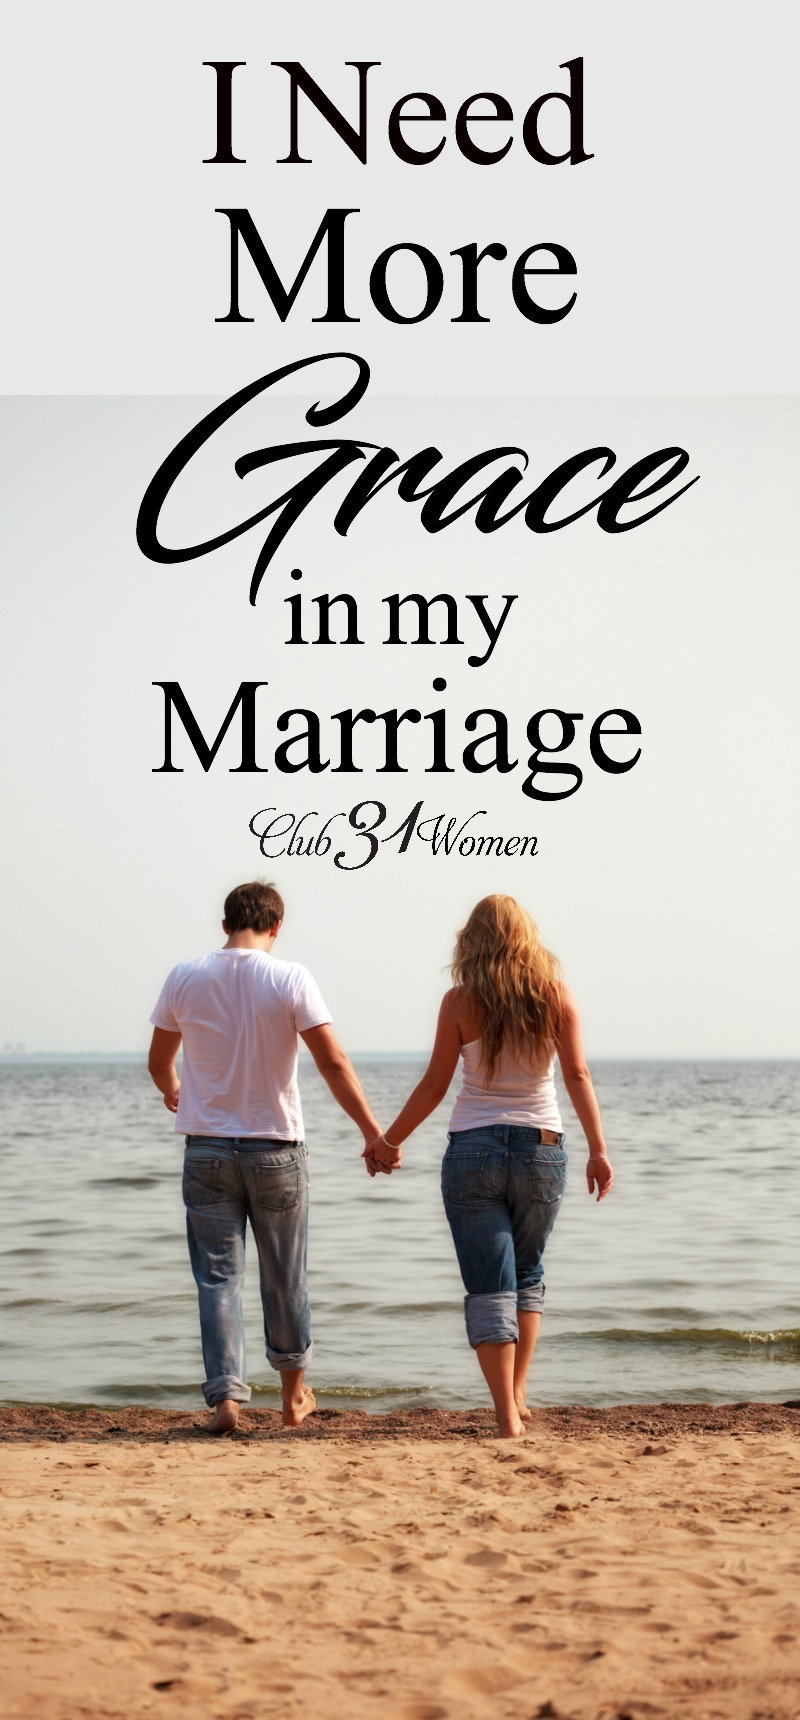 Sometimes seasons get stressful and overwhelming which can make for more irritability within marriages. How can we grant more grace during these times? via @Club31Women